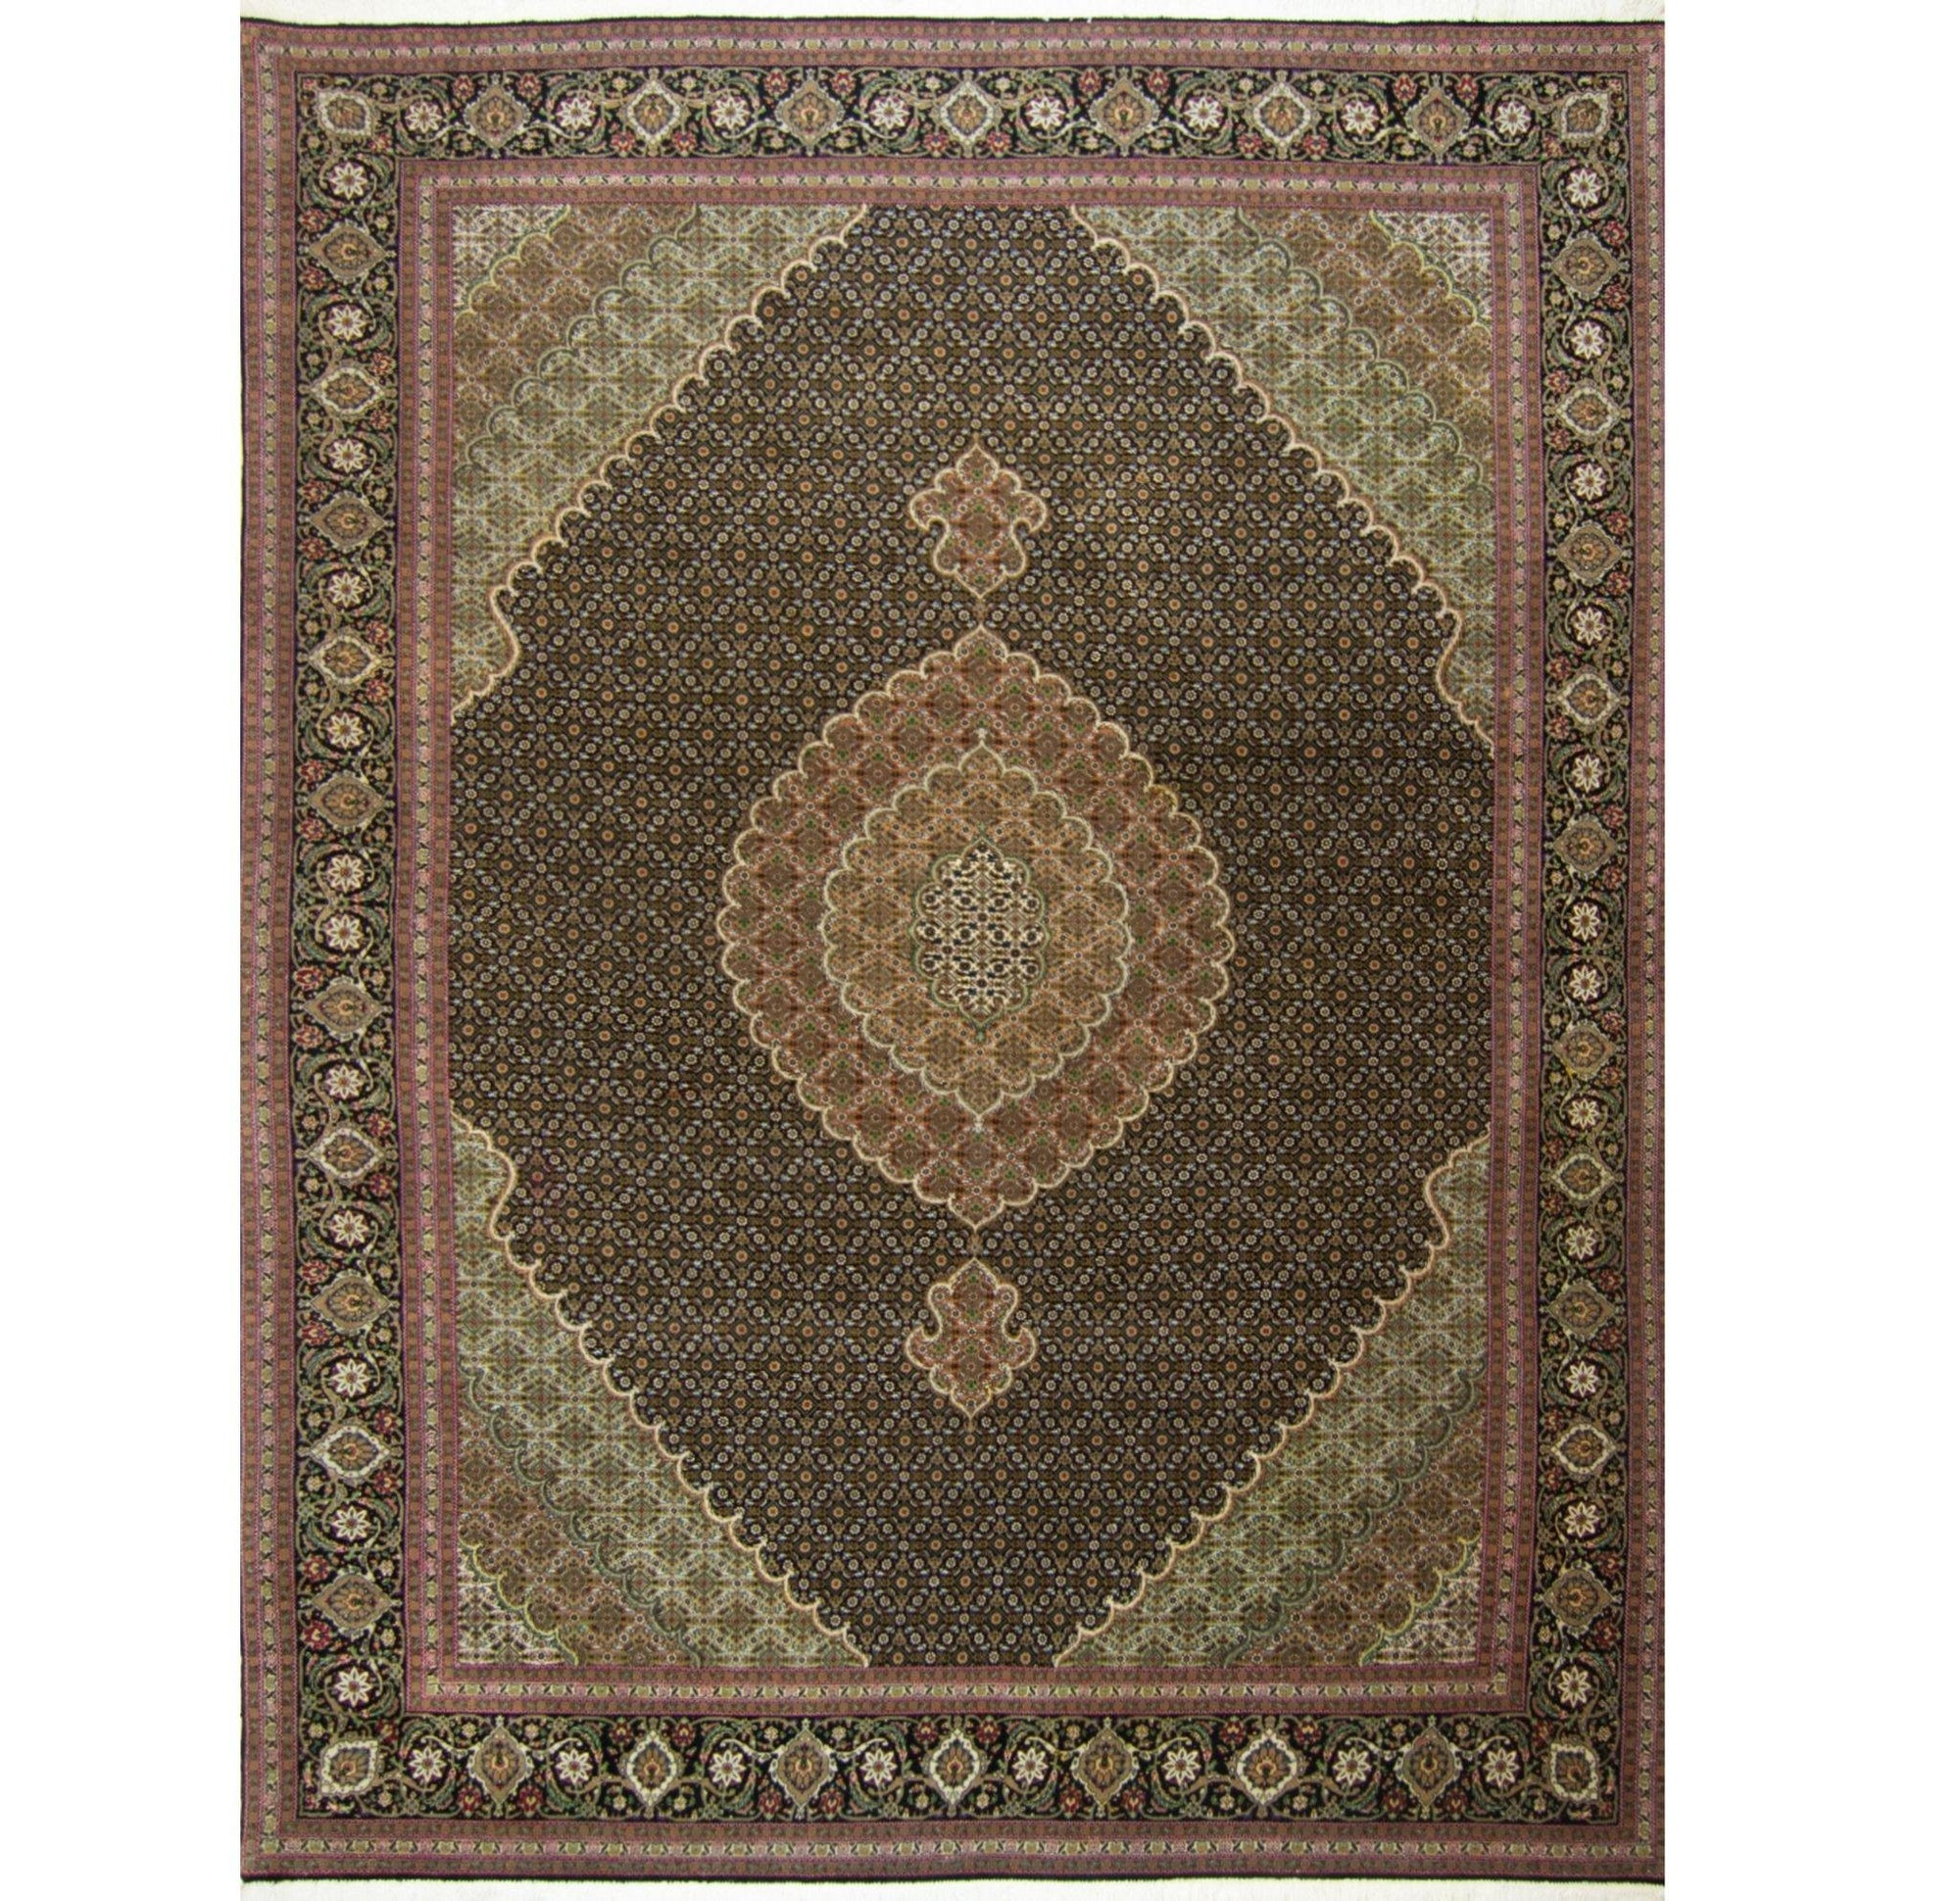 Super Fine Hand-knotted Persian Wool and Silk Tabriz - Mahi Rug 204 cm x 297 cm Persian-Rug | House-of-Haghi | NewMarket | Auckland | NZ | Handmade Persian Rugs | Hand Knotted Persian Rugs